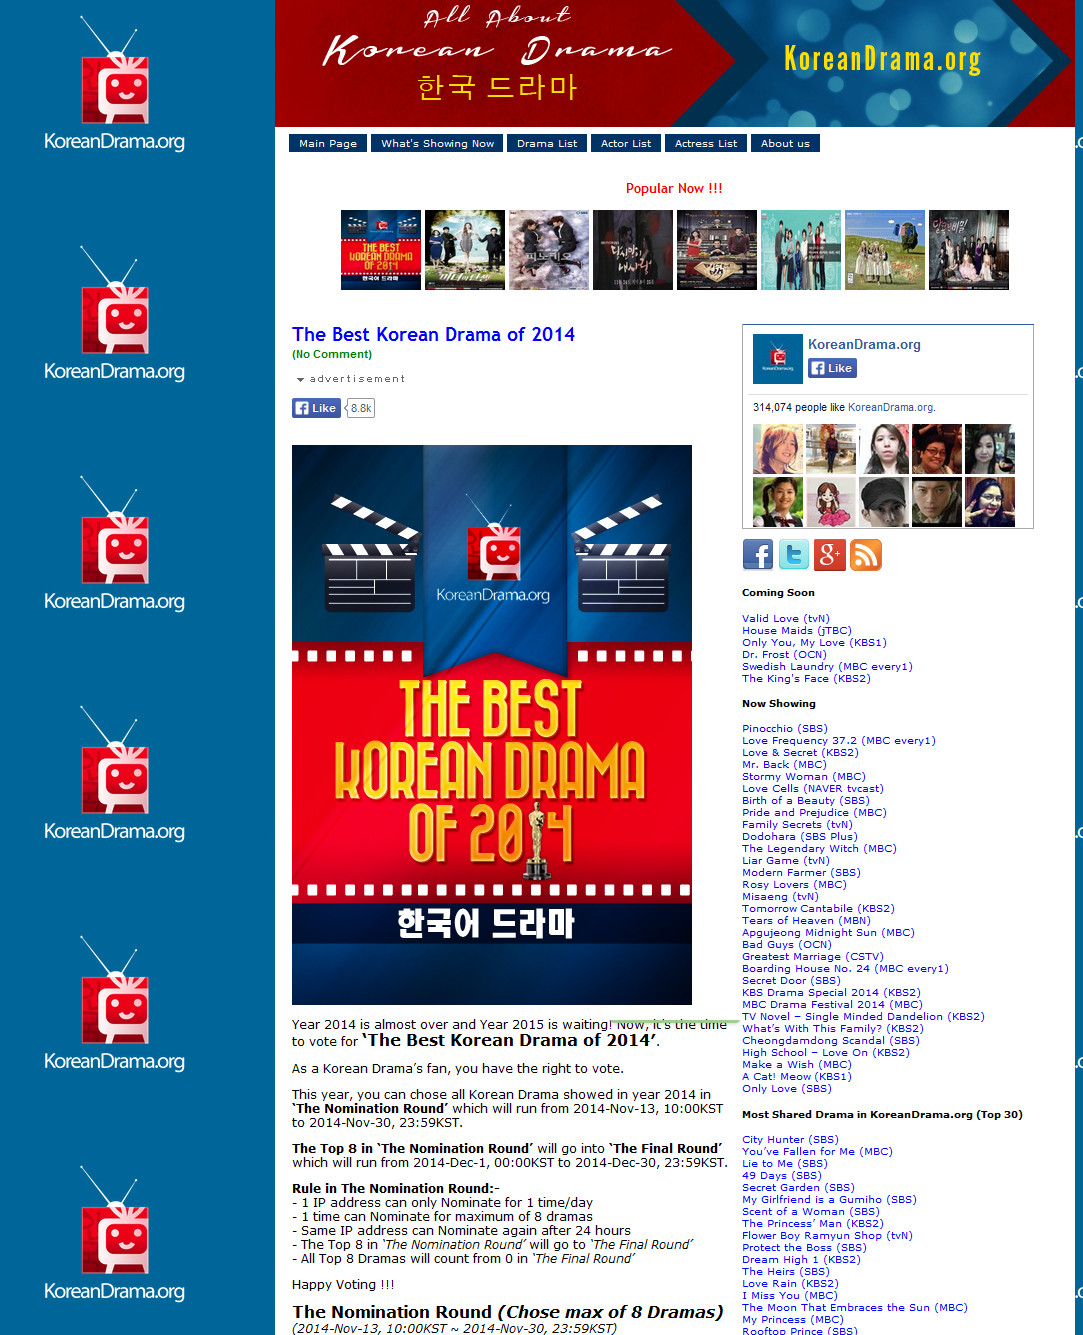 Vote For Inspiring Generation For The Best Korean Drama Of 2014